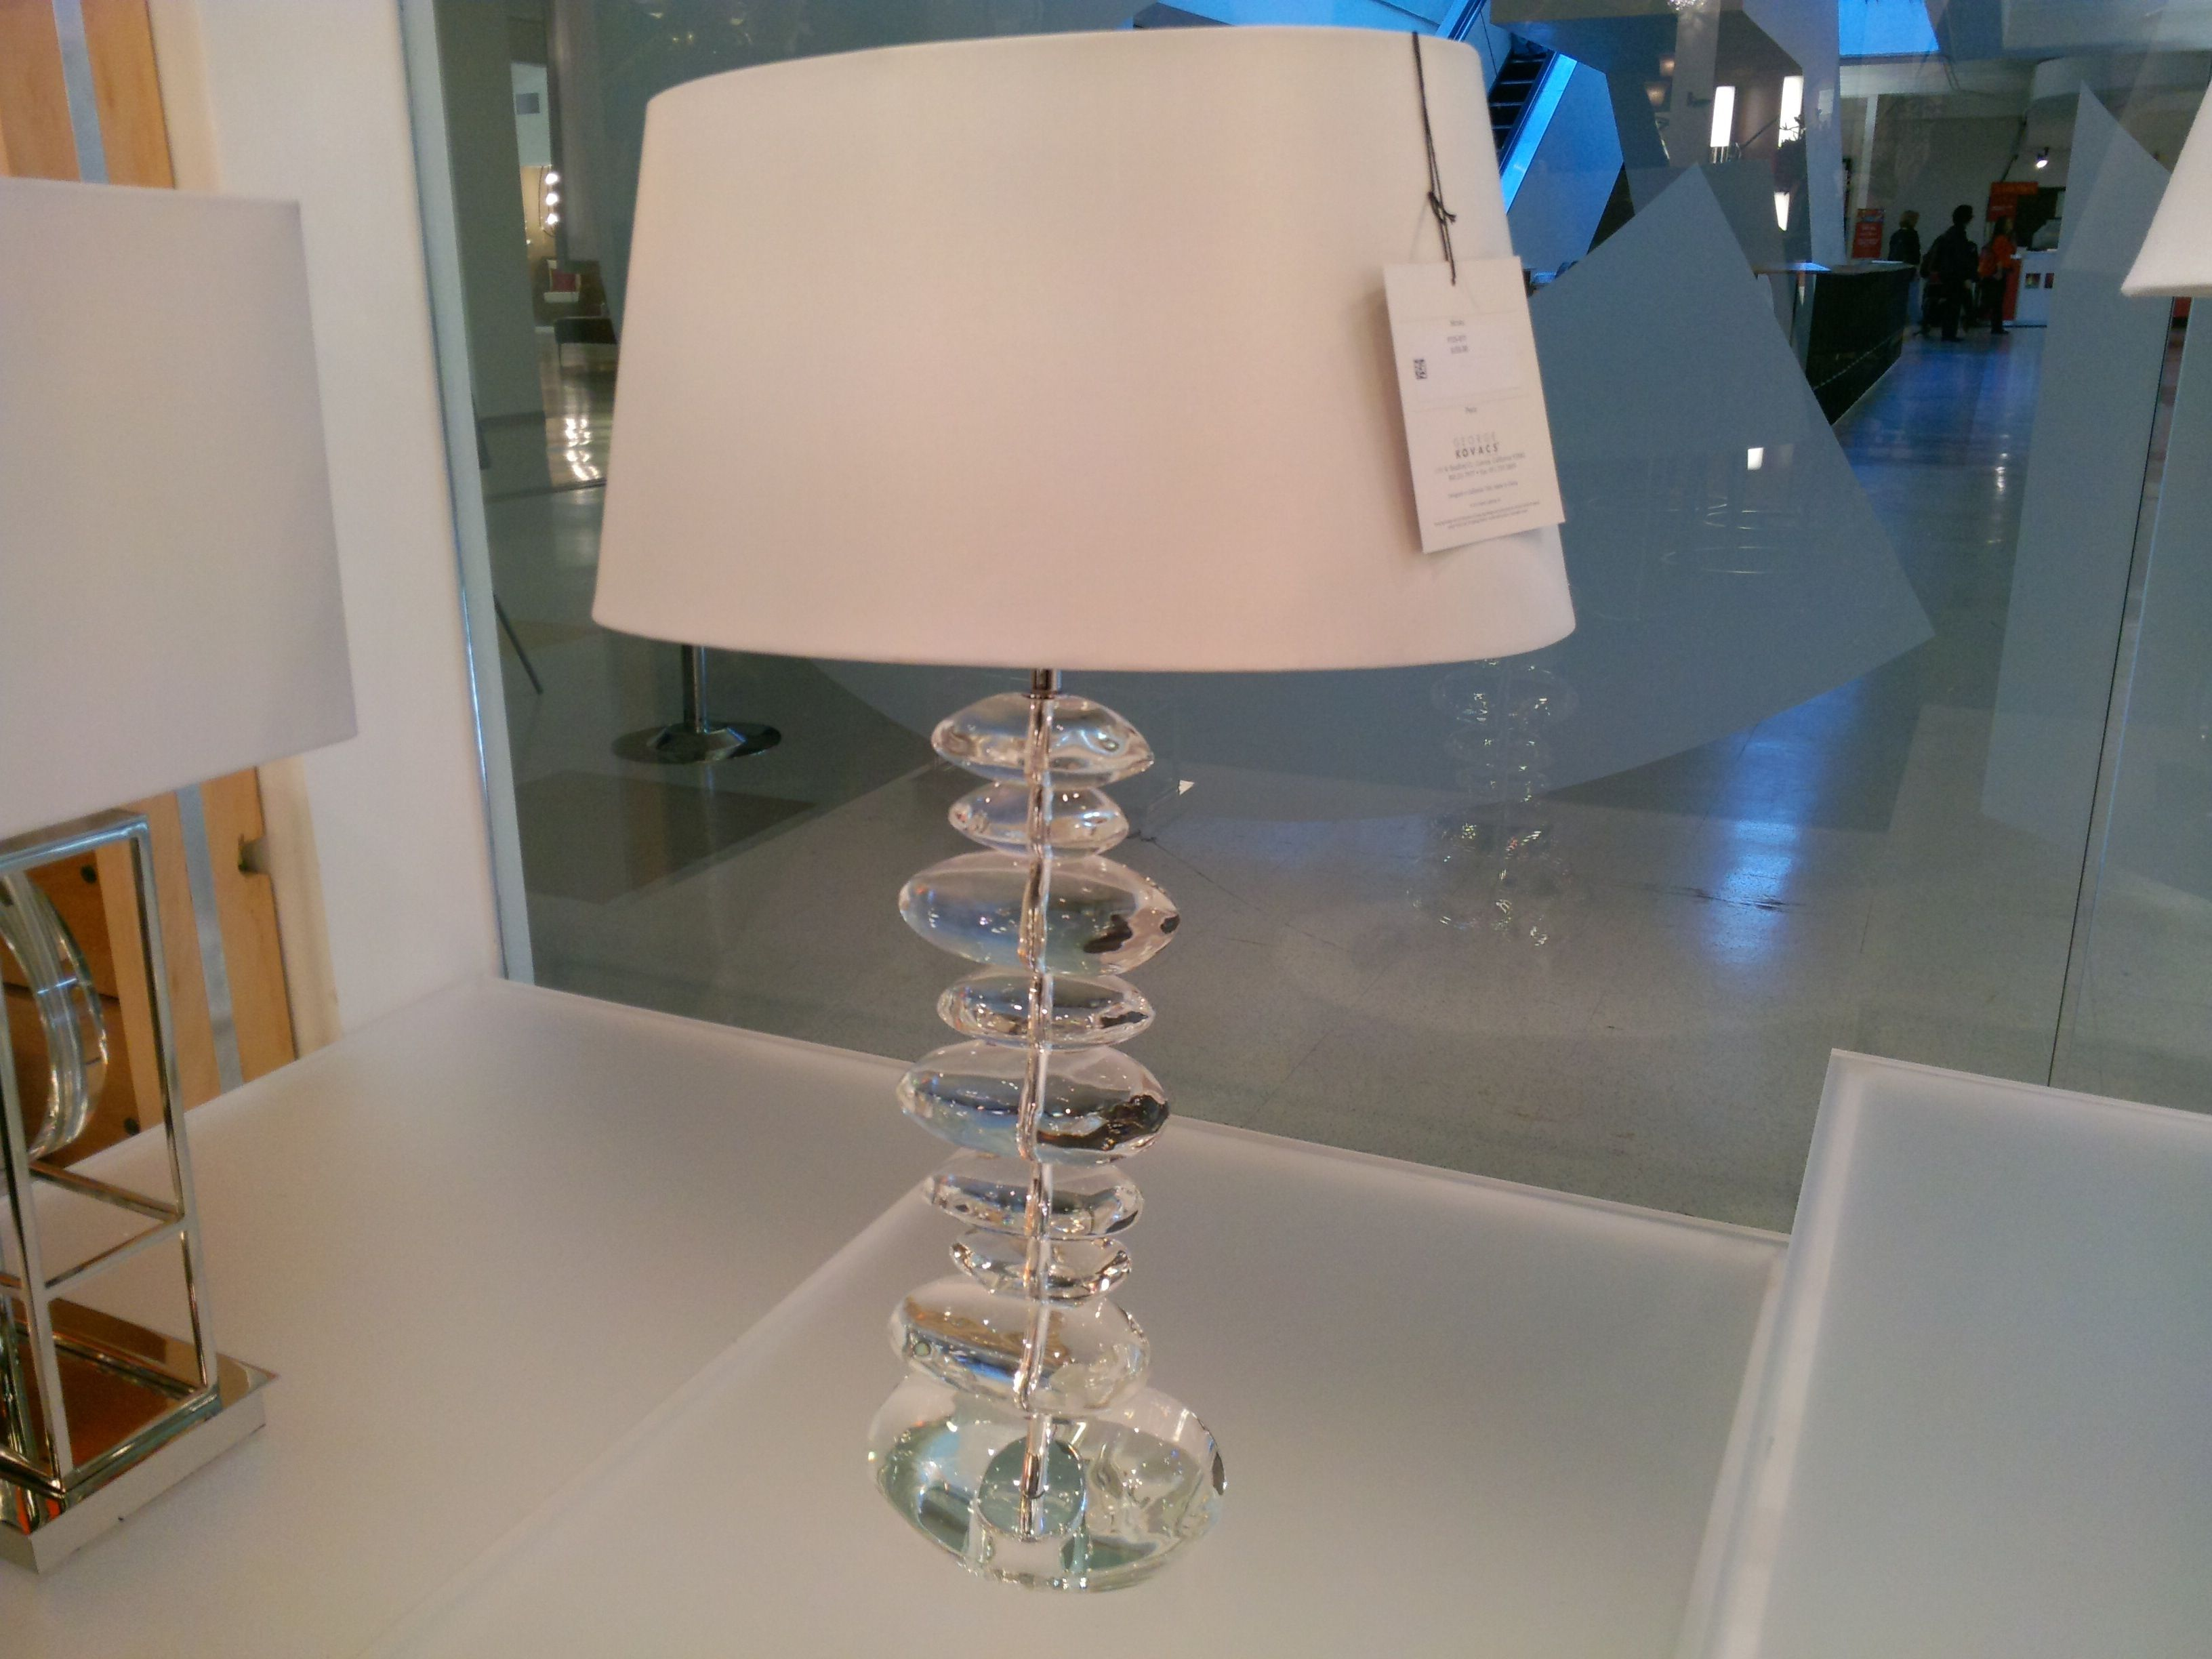 Minka lavery table lamp available at sylightingdesign or in minka lavery table lamp available at sylightingdesign or in our showroom in new oxford geotapseo Choice Image